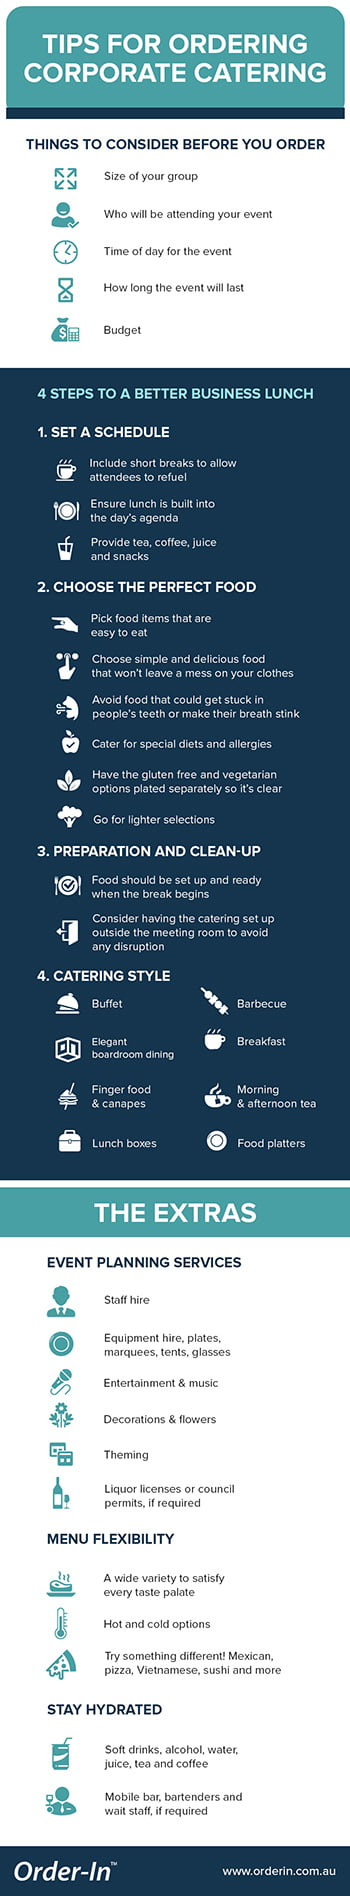 tips for ordering corporate catering infographic